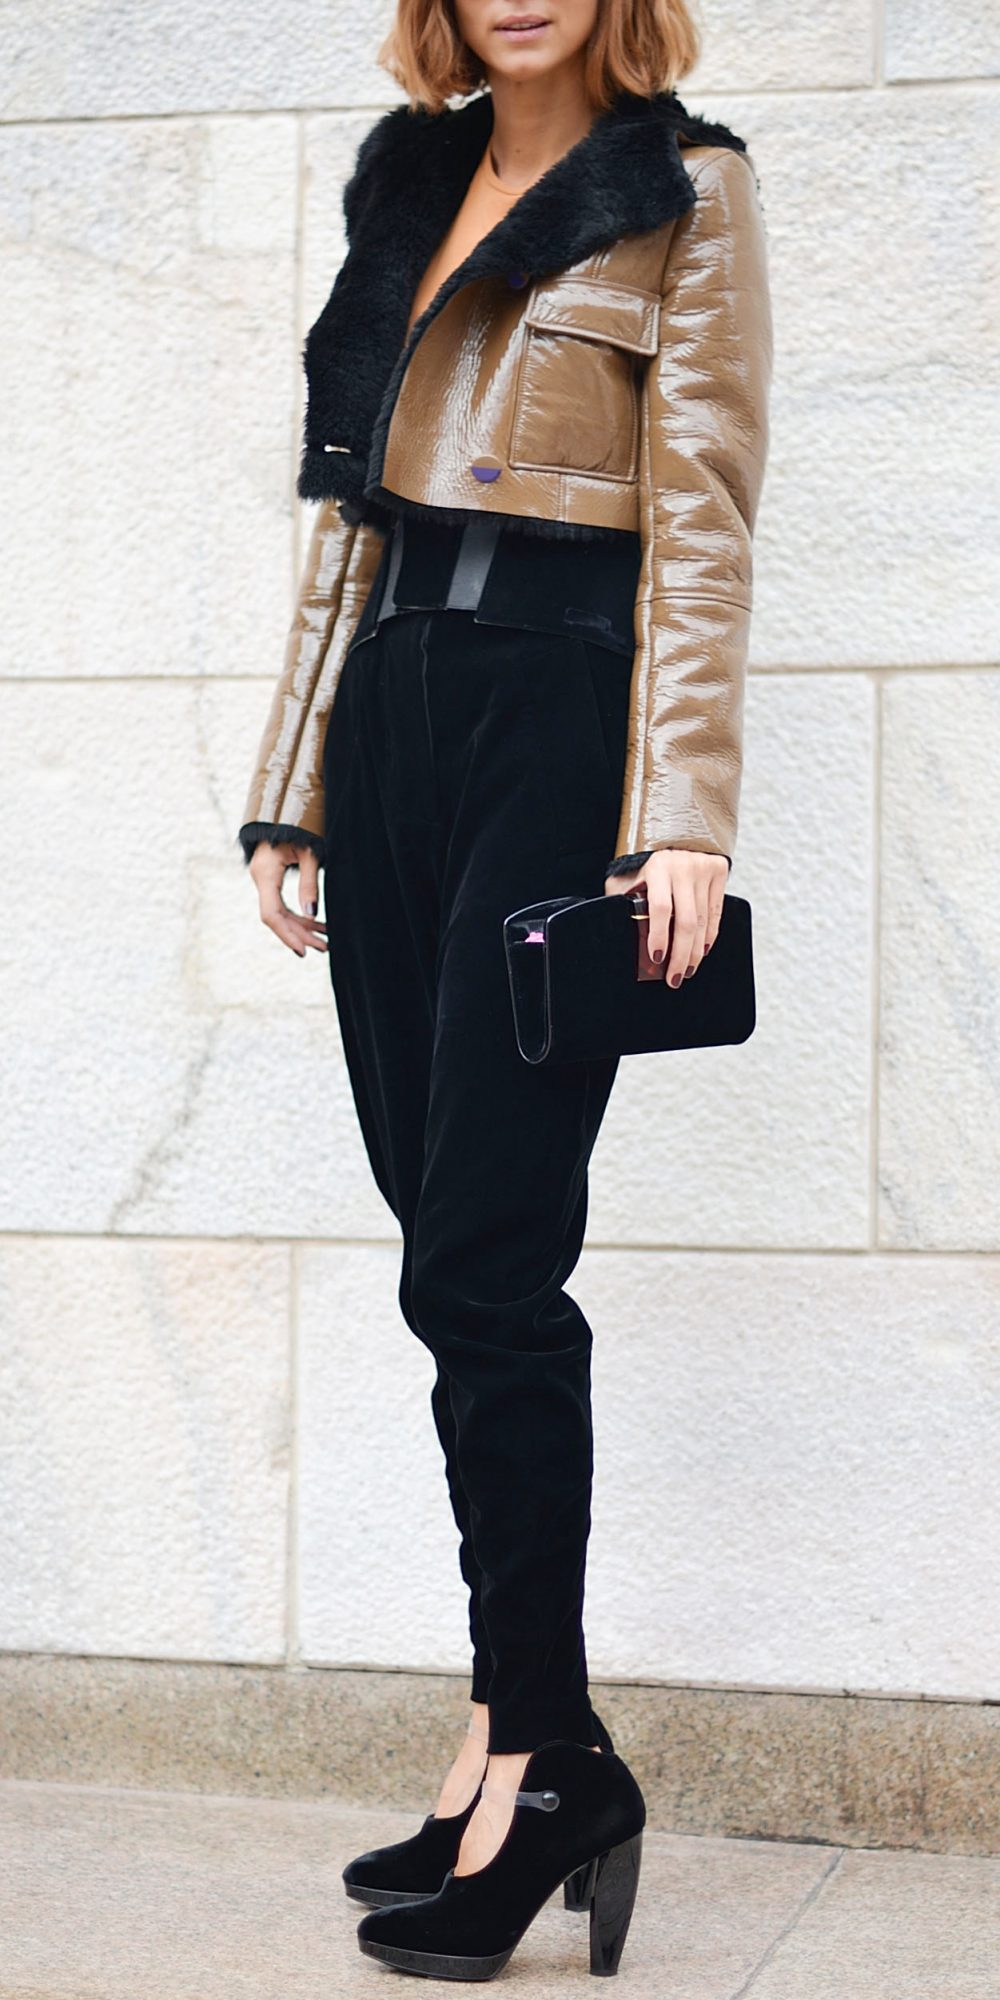 a9c9f70110 How to Wear a Leather Jacket | InStyle.com